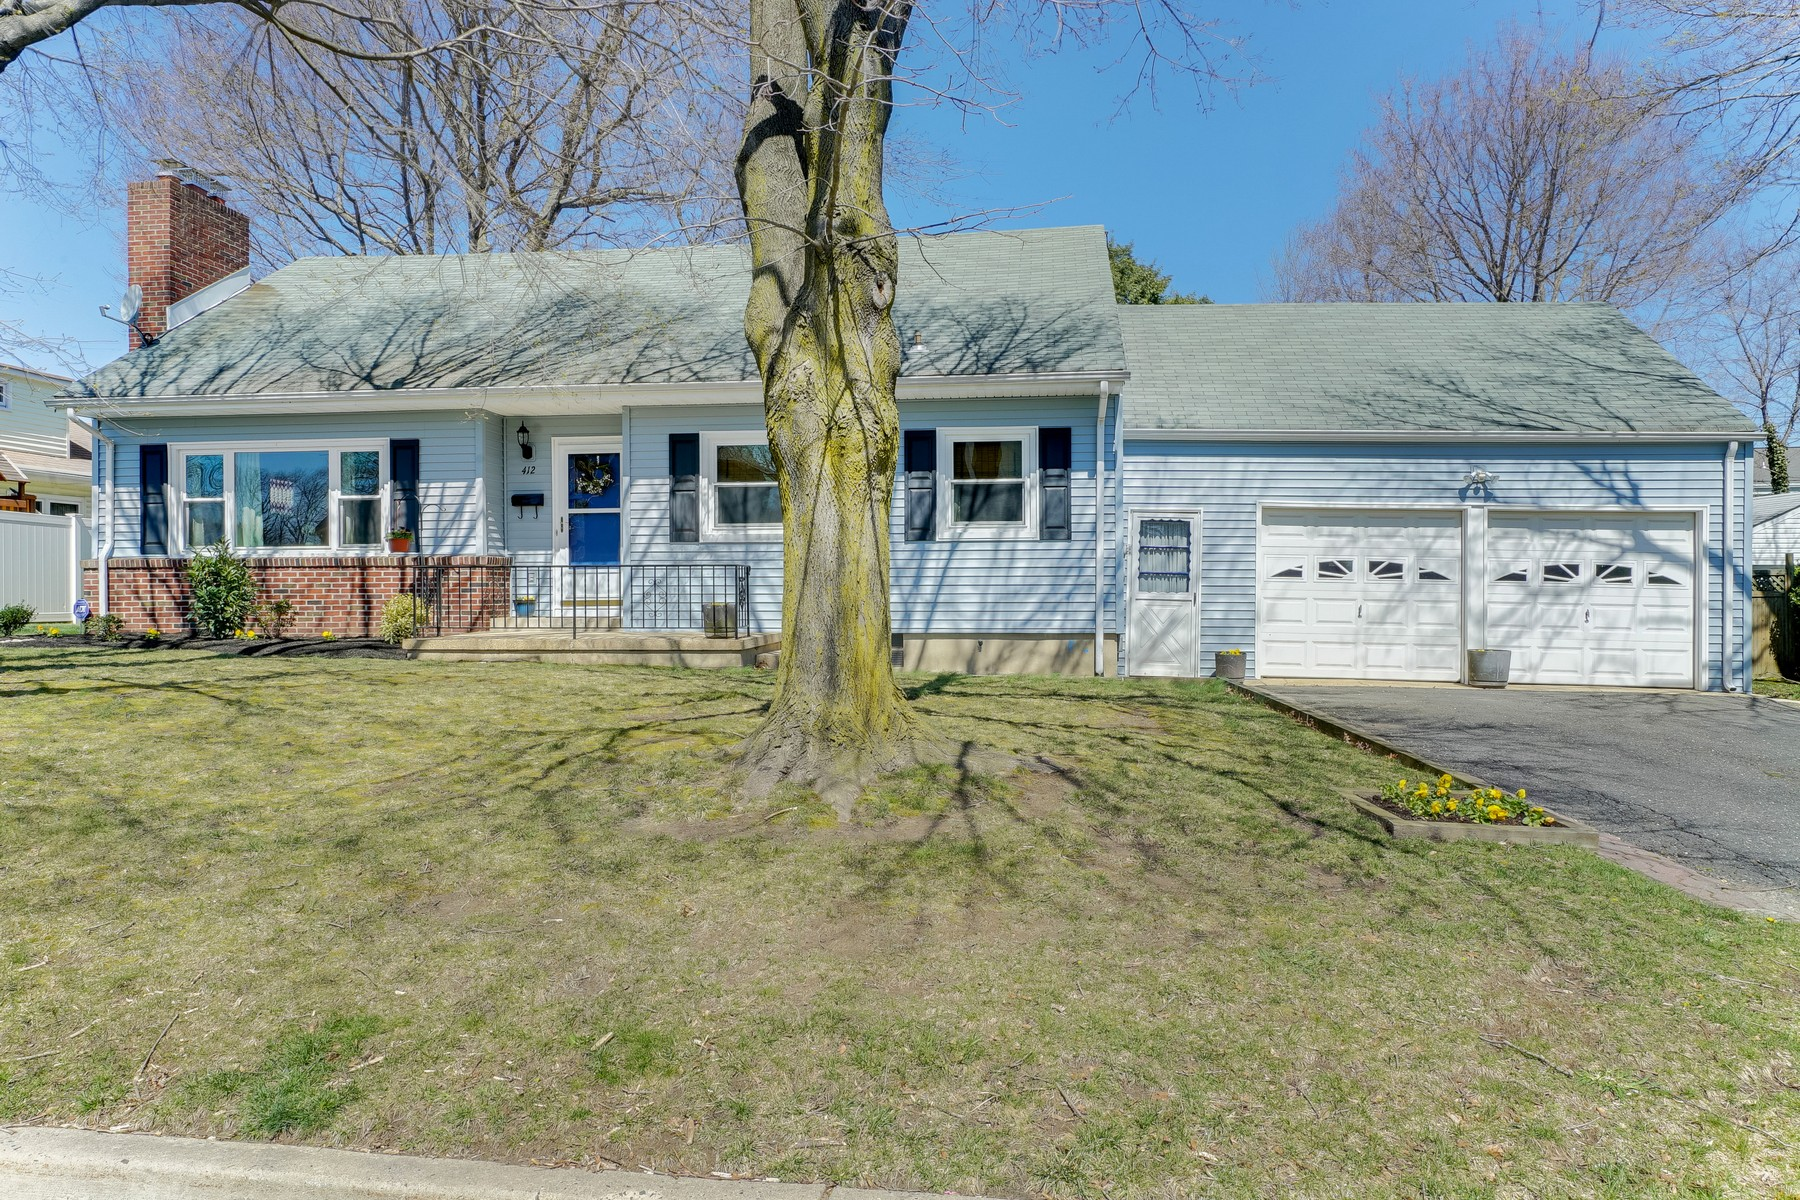 Single Family Home for Sale at Traditional Colonial 412 Belmont Ave Ocean, New Jersey 07712 United States